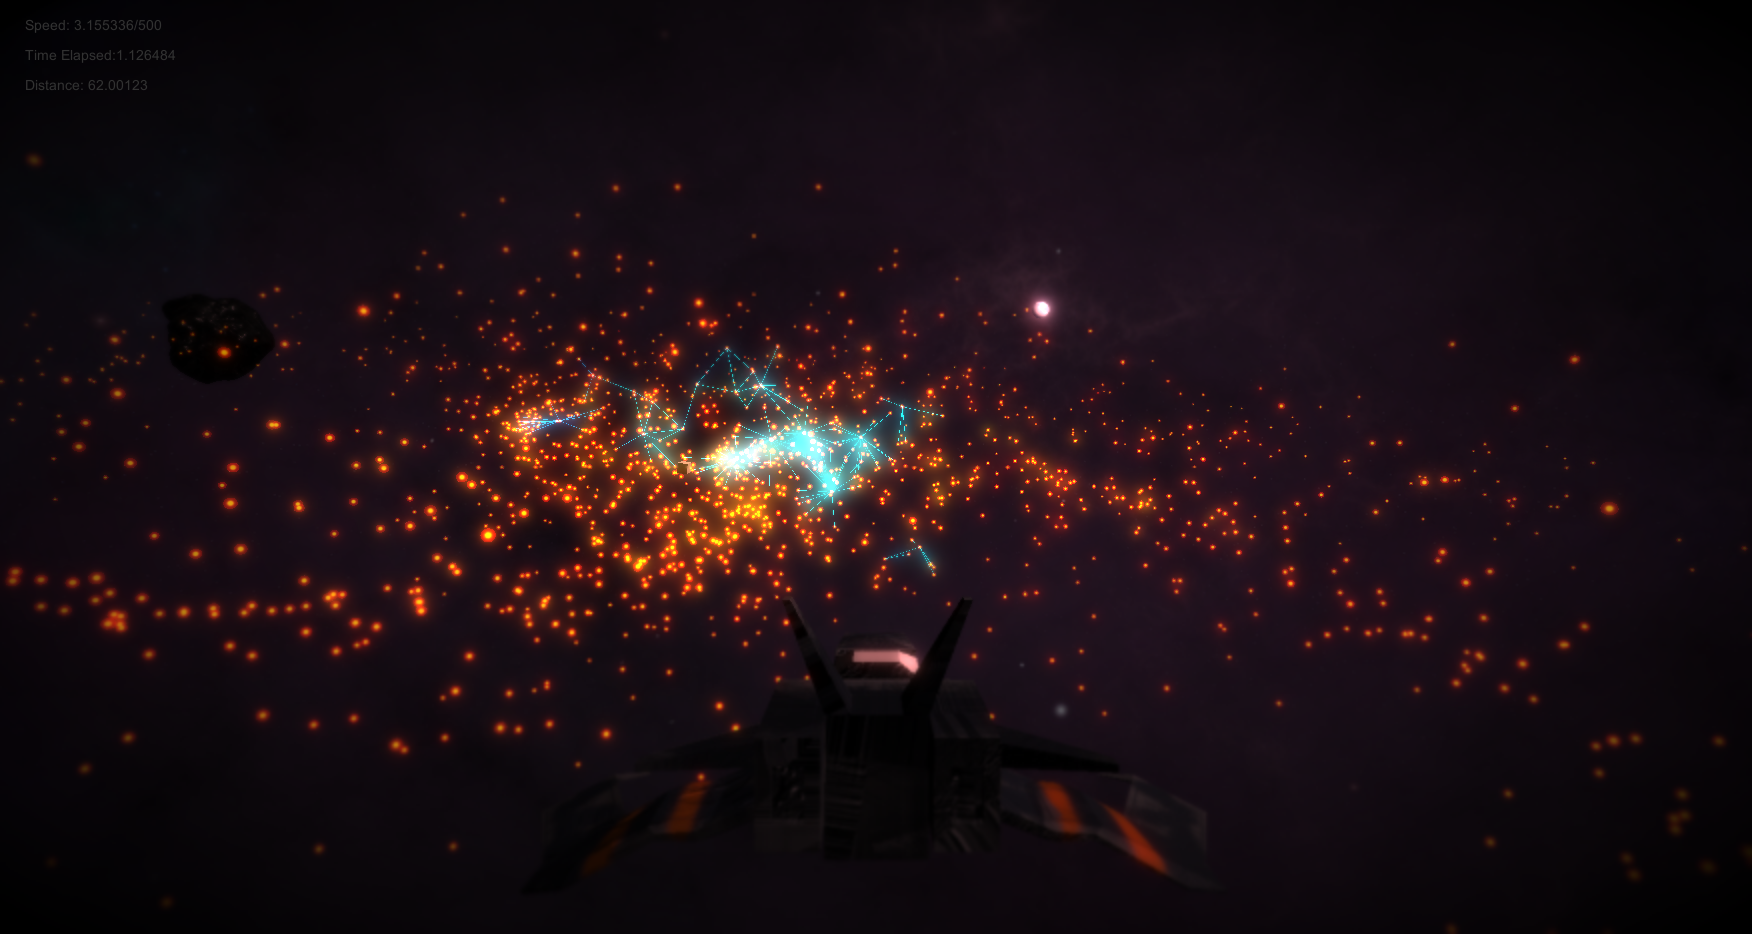 Procedurally Generating Galaxies, Planets and Nebulae news - Space